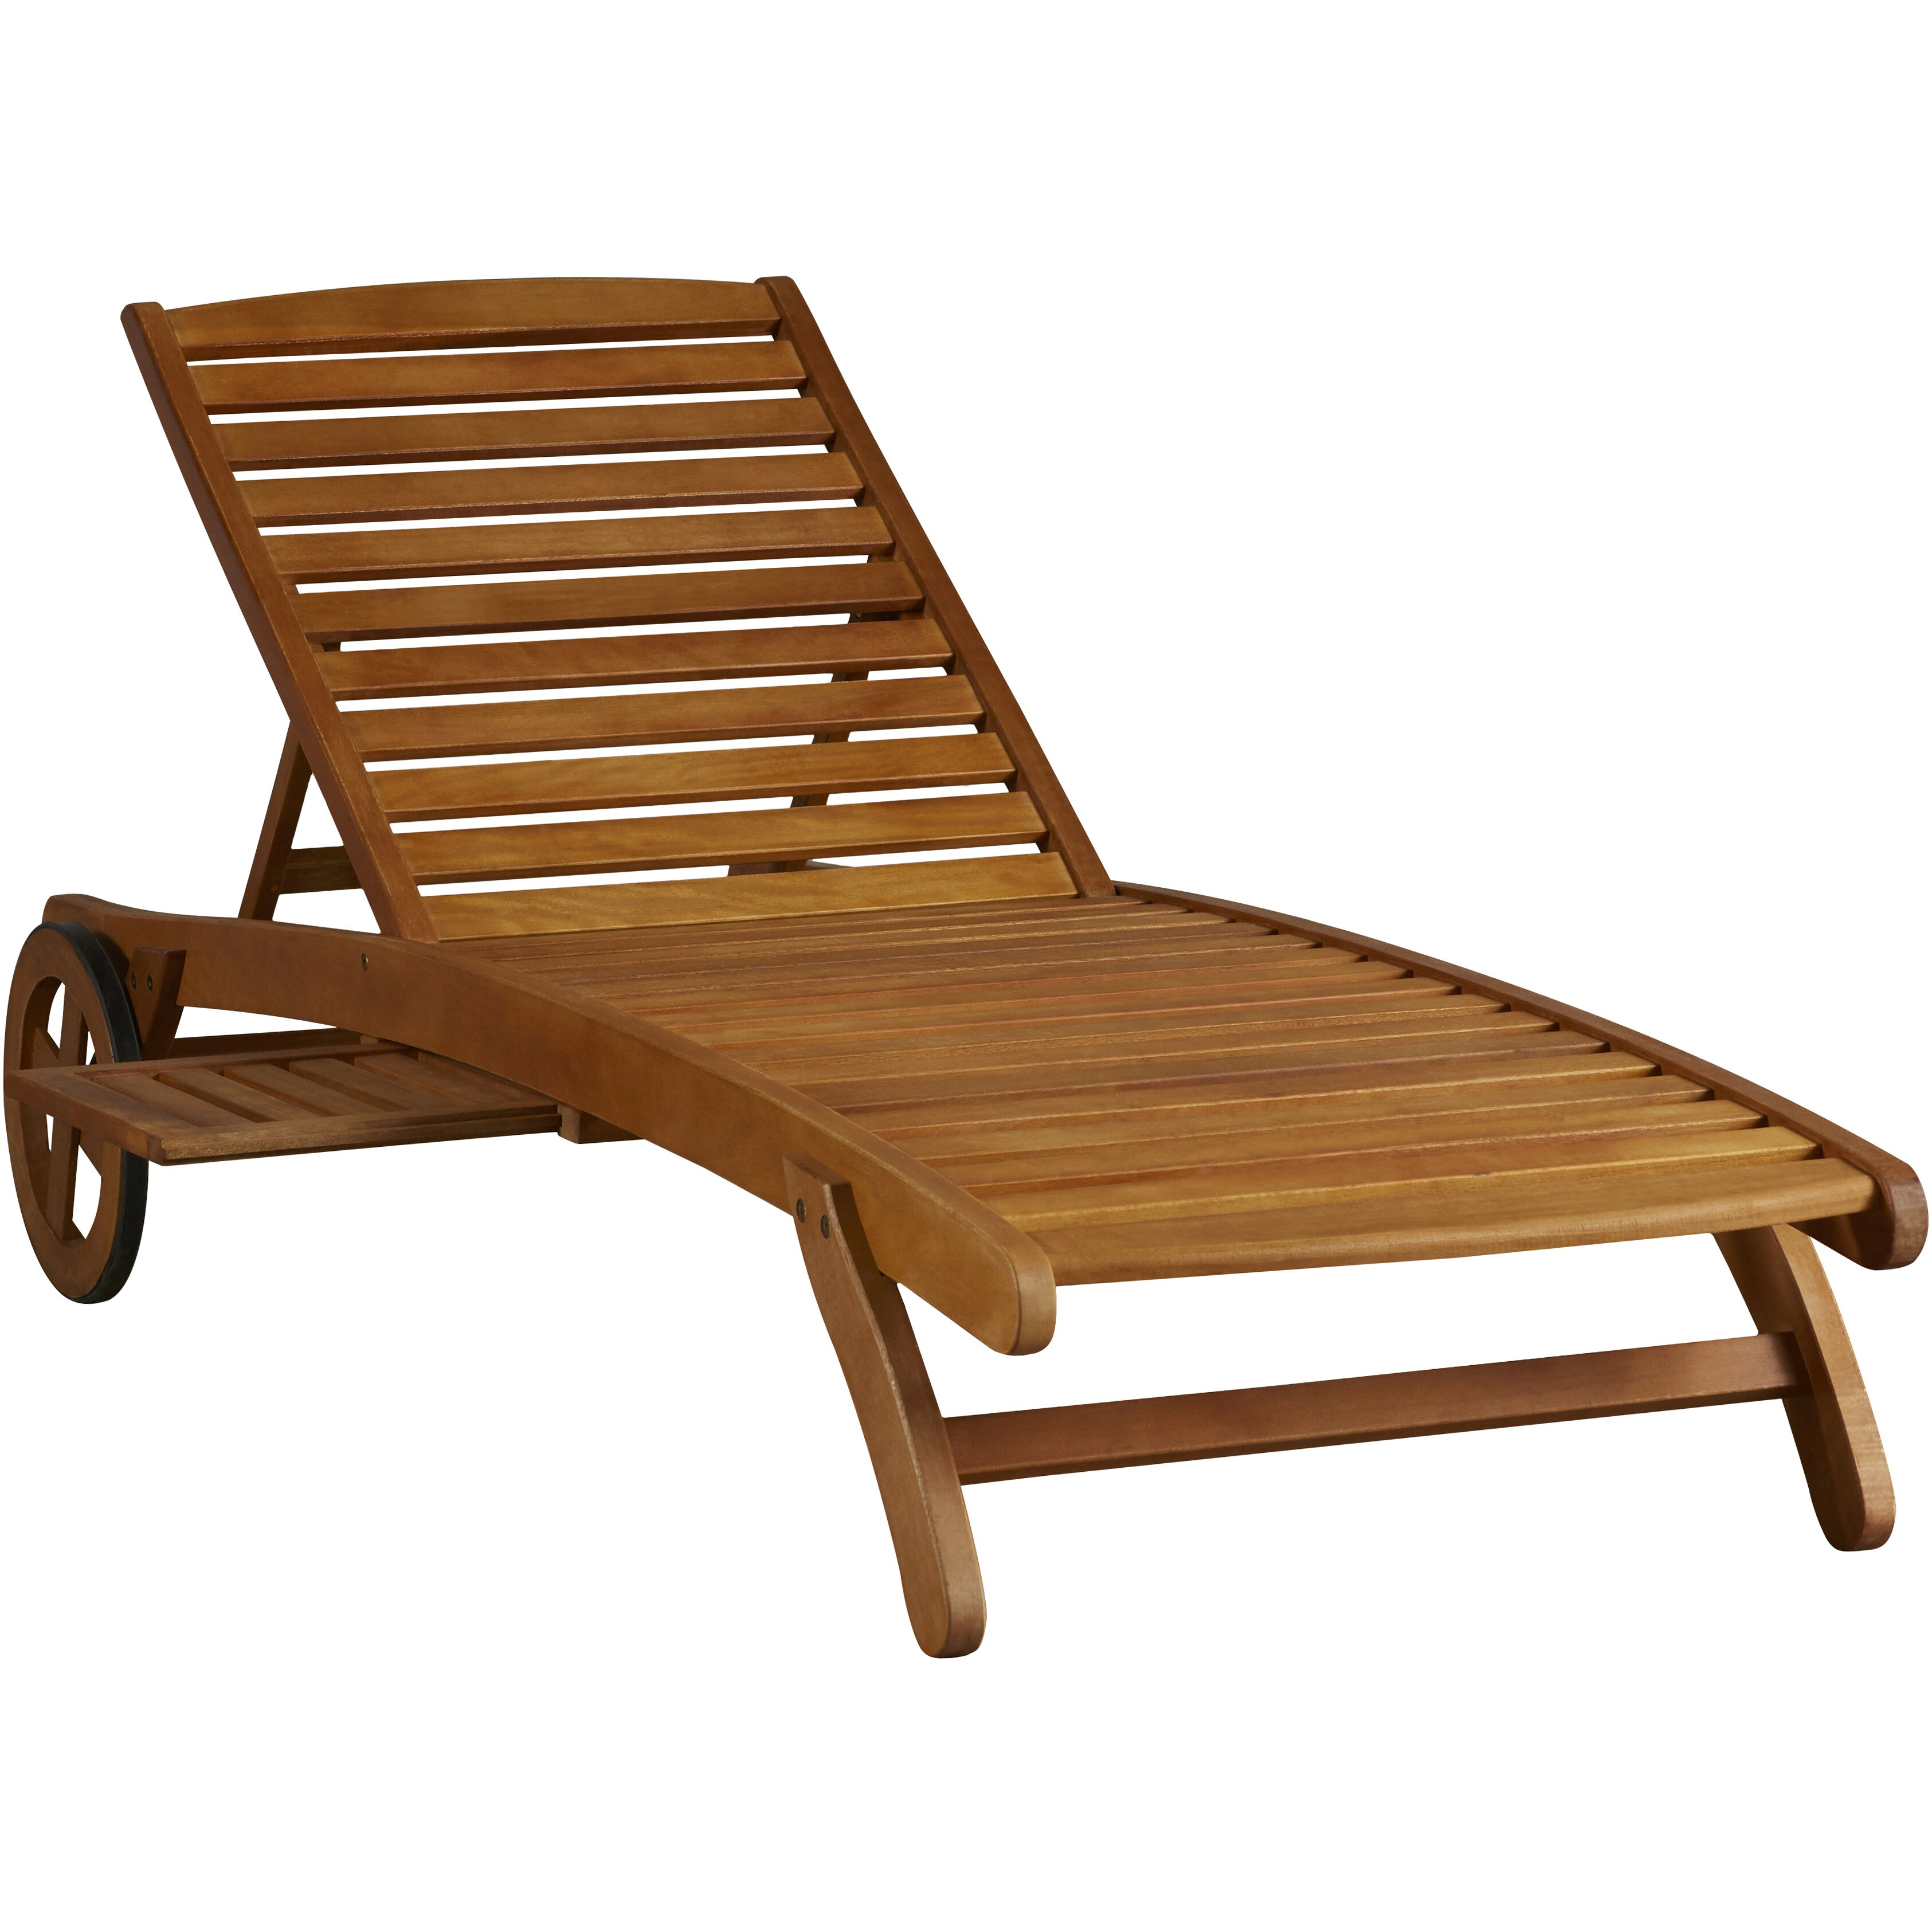 Bay isle home dracaena balau wood patio chaise lounge for Buy outdoor chaise lounge